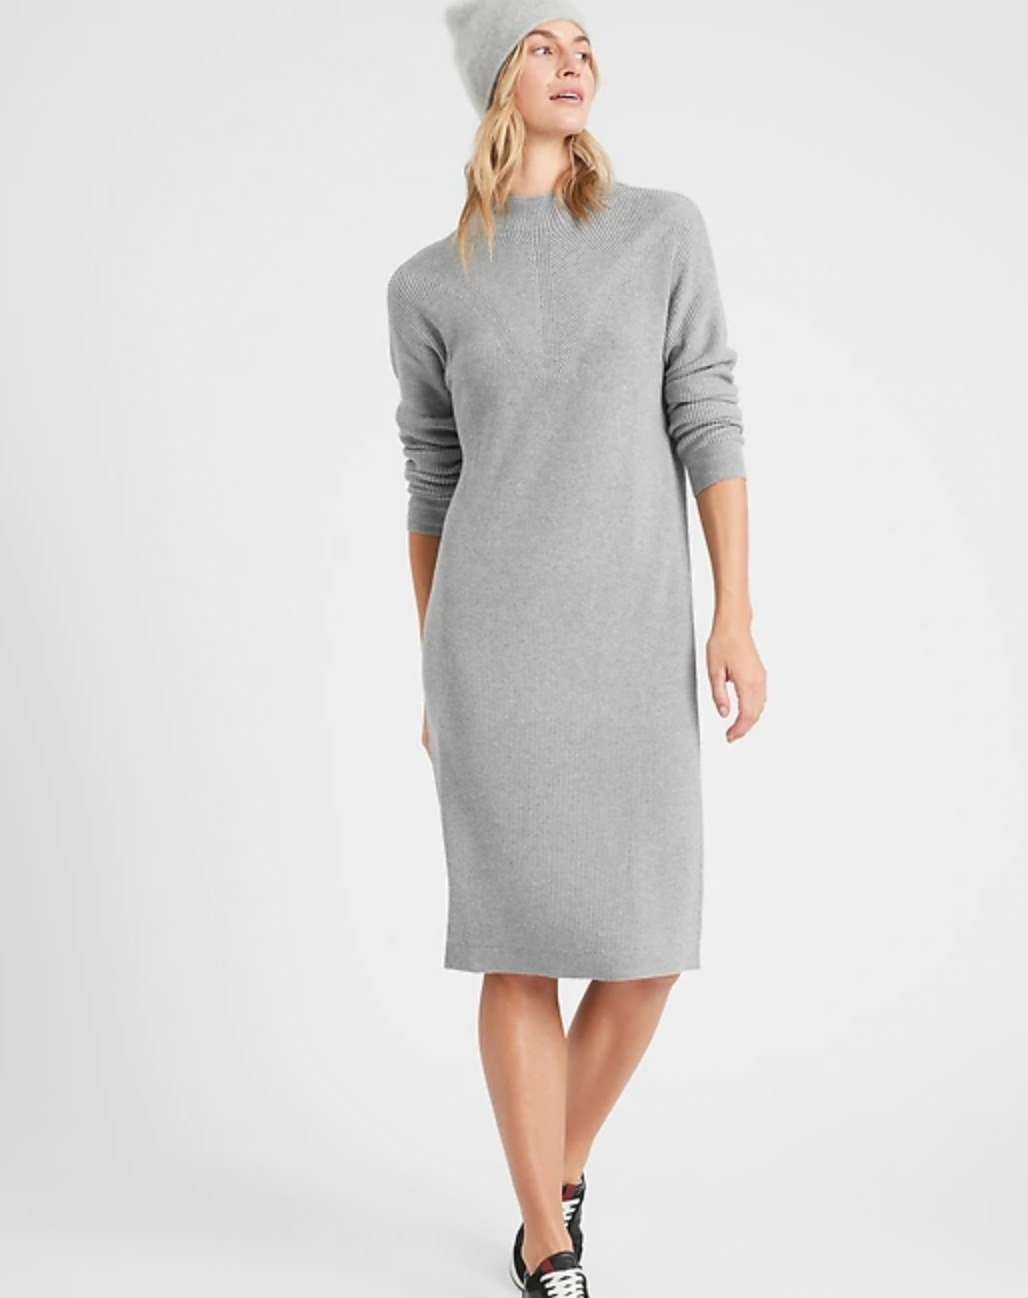 The textured sweater dress in heather gray